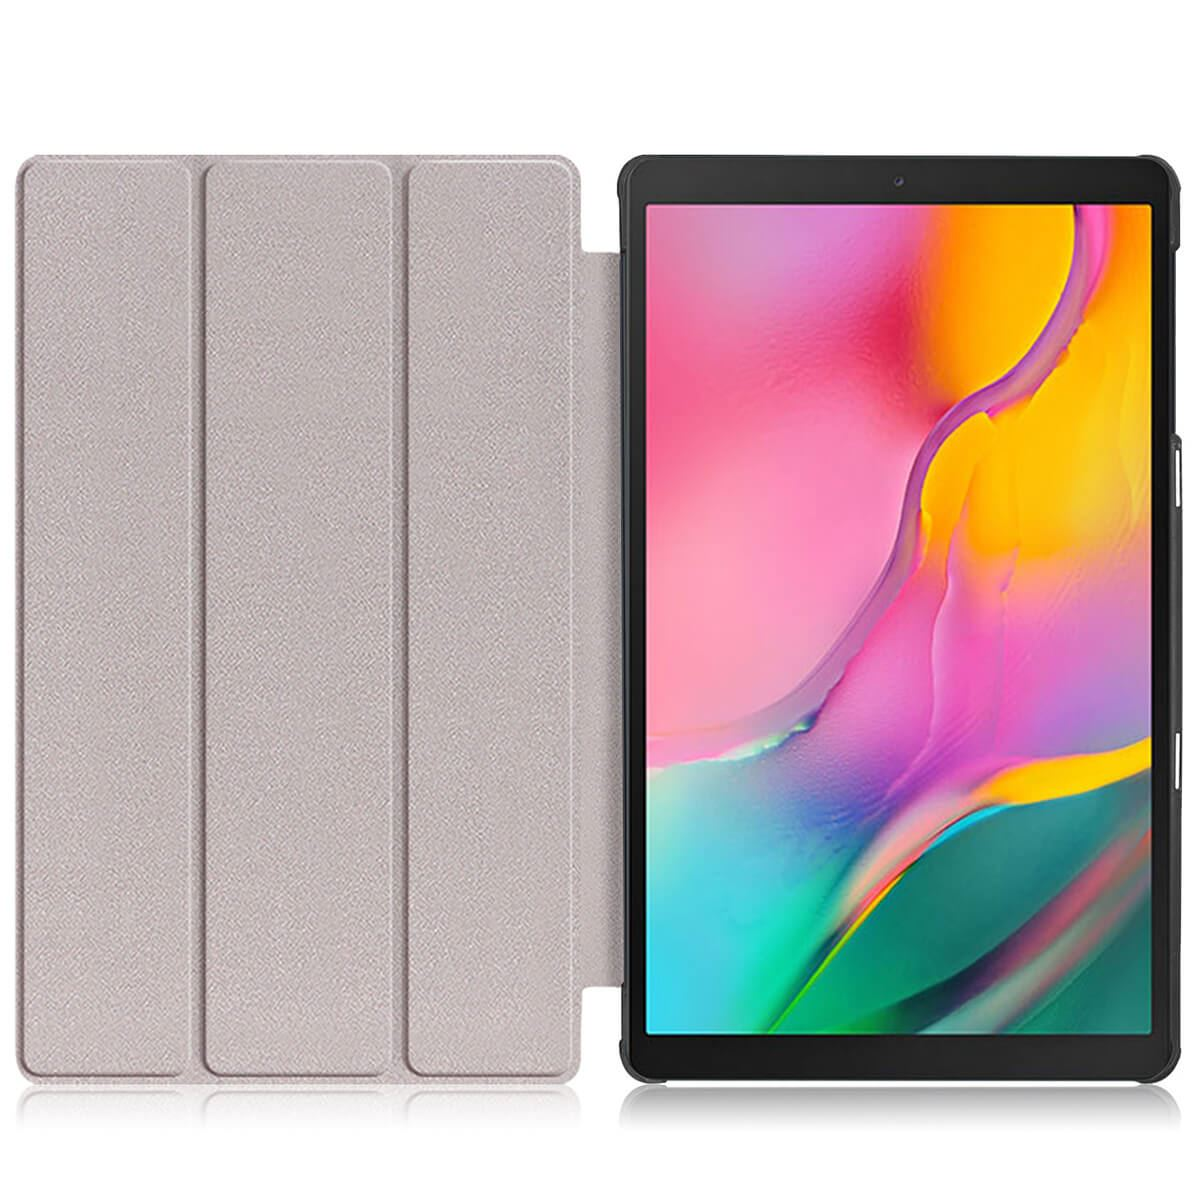 Flip-Cover-Trifold-Case-For-T510-T515-Samsung-Galaxy-Tab-A-2019-10-1-Full-Body thumbnail 12